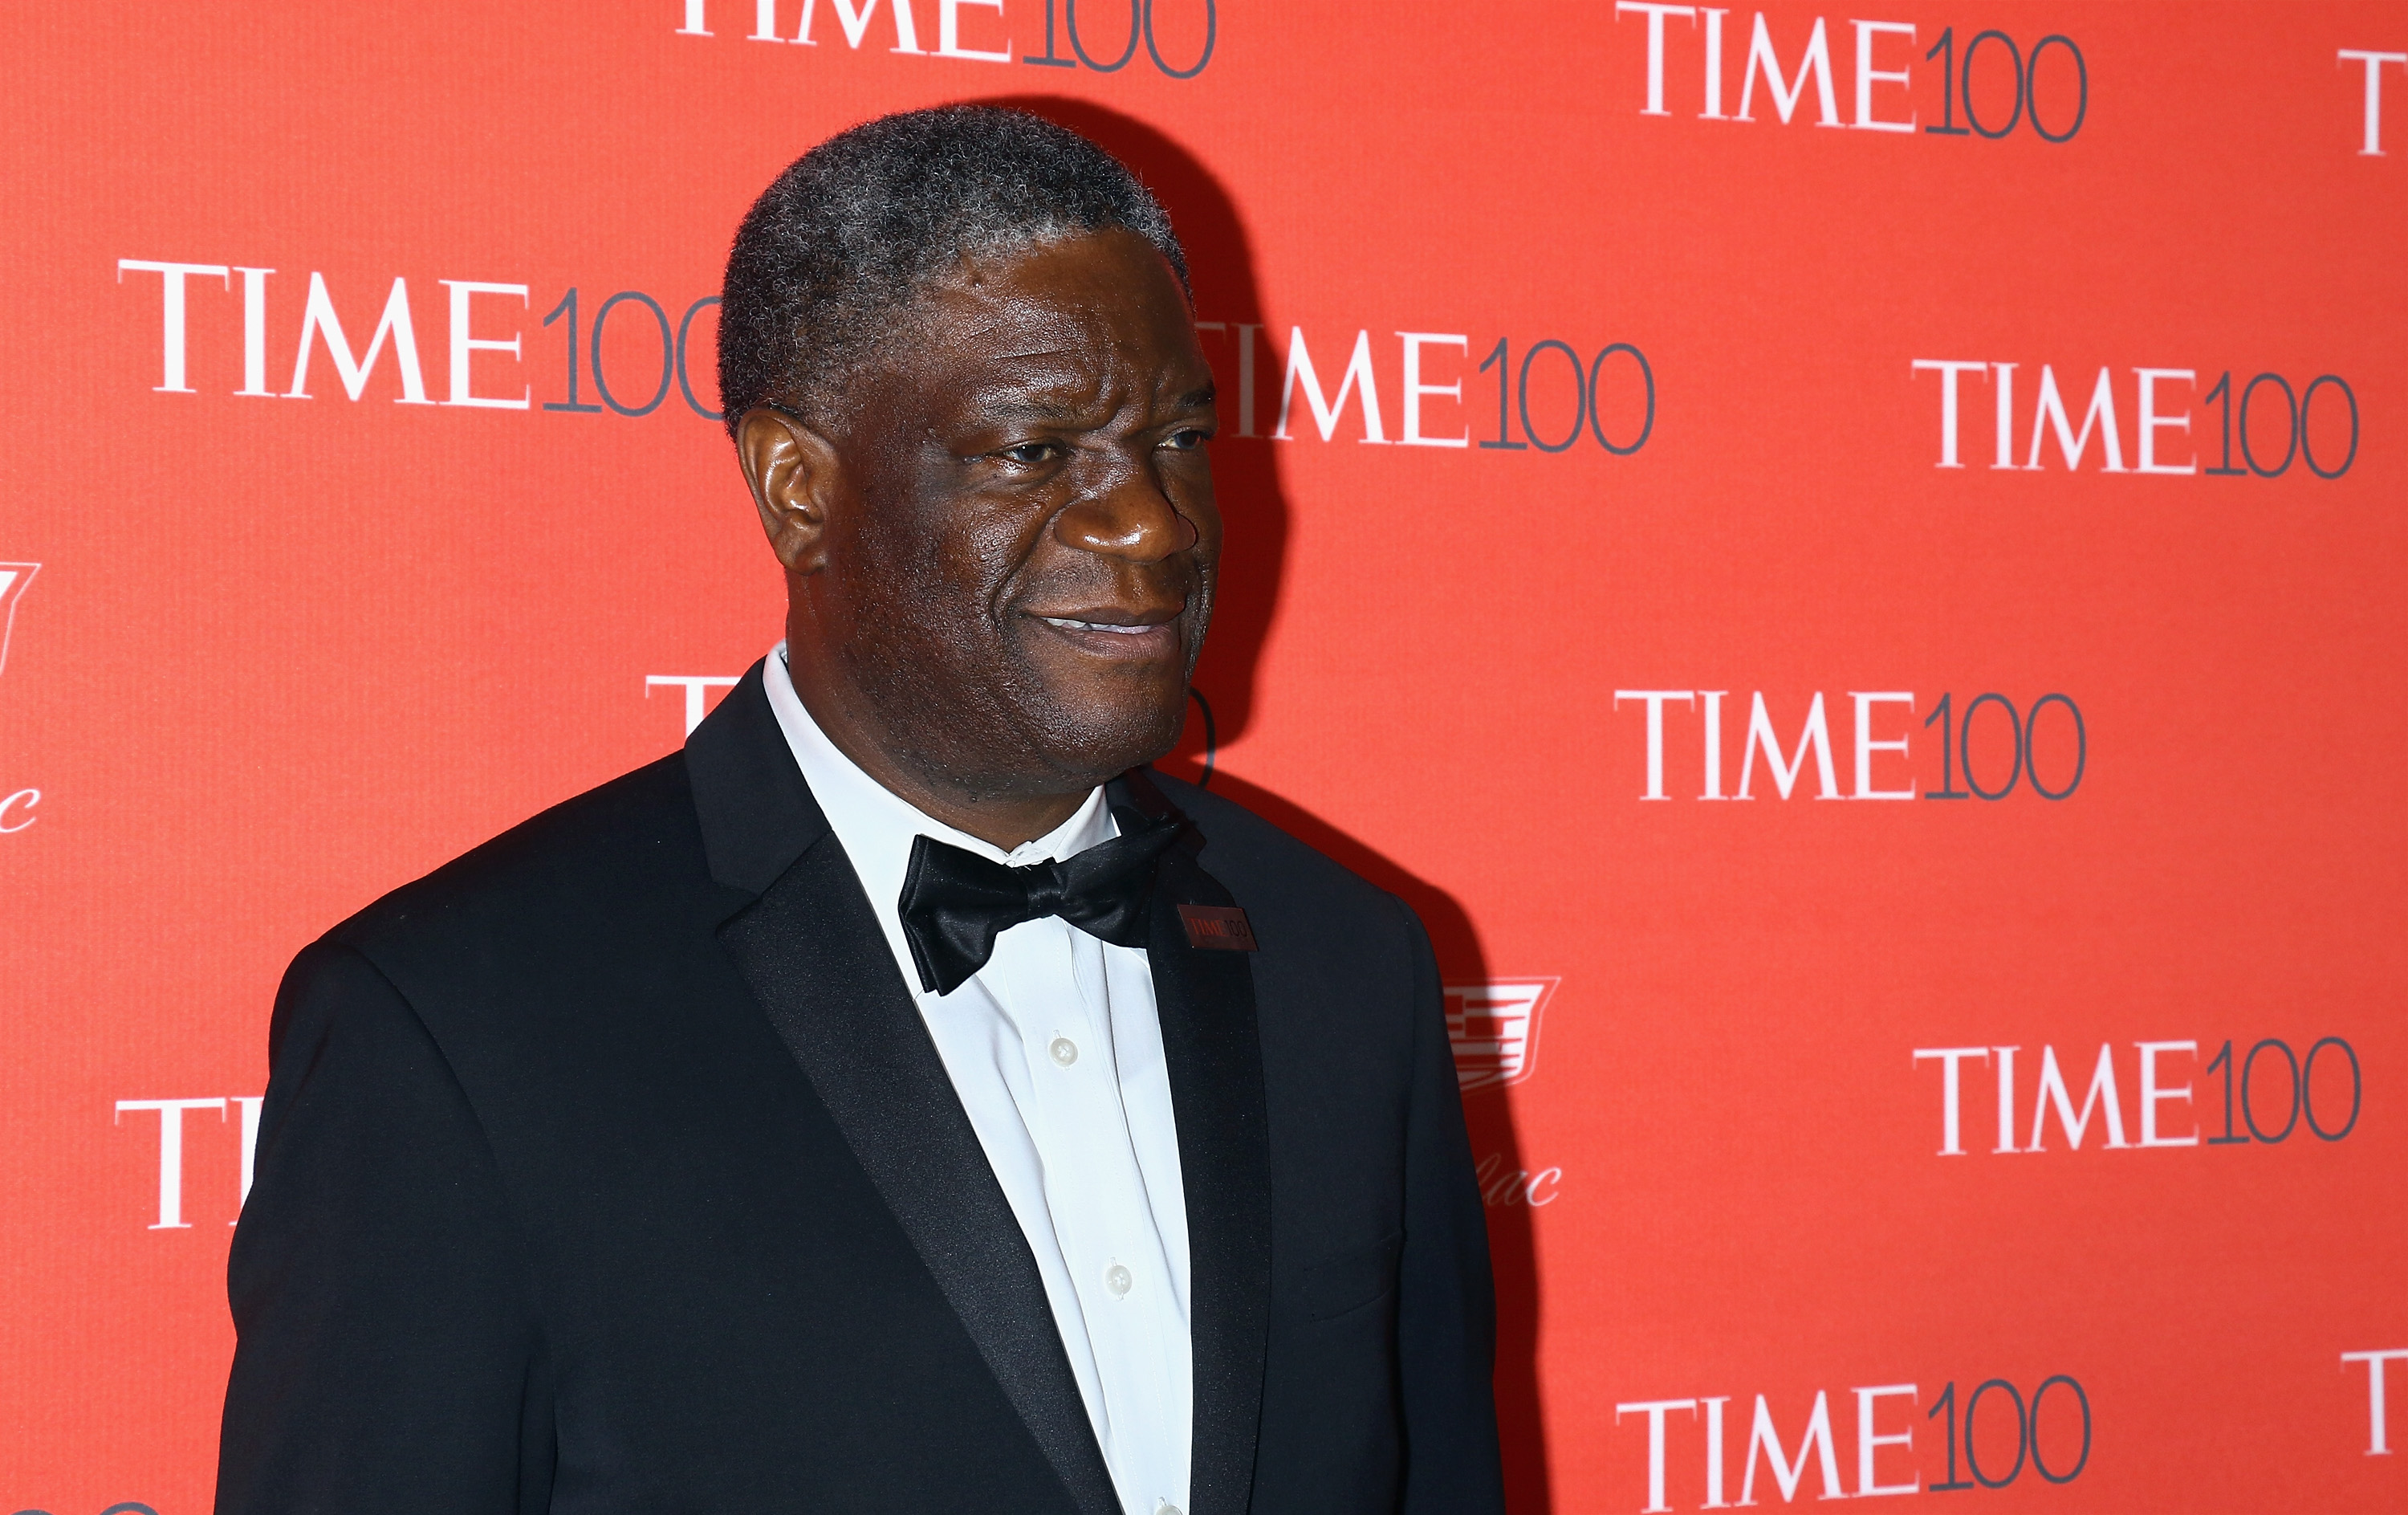 Dennis Mukwege attends the 2016 Time 100 Gala at Frederick P. Rose Hall, Jazz at Lincoln Center on April 26, 2016 in New York City.